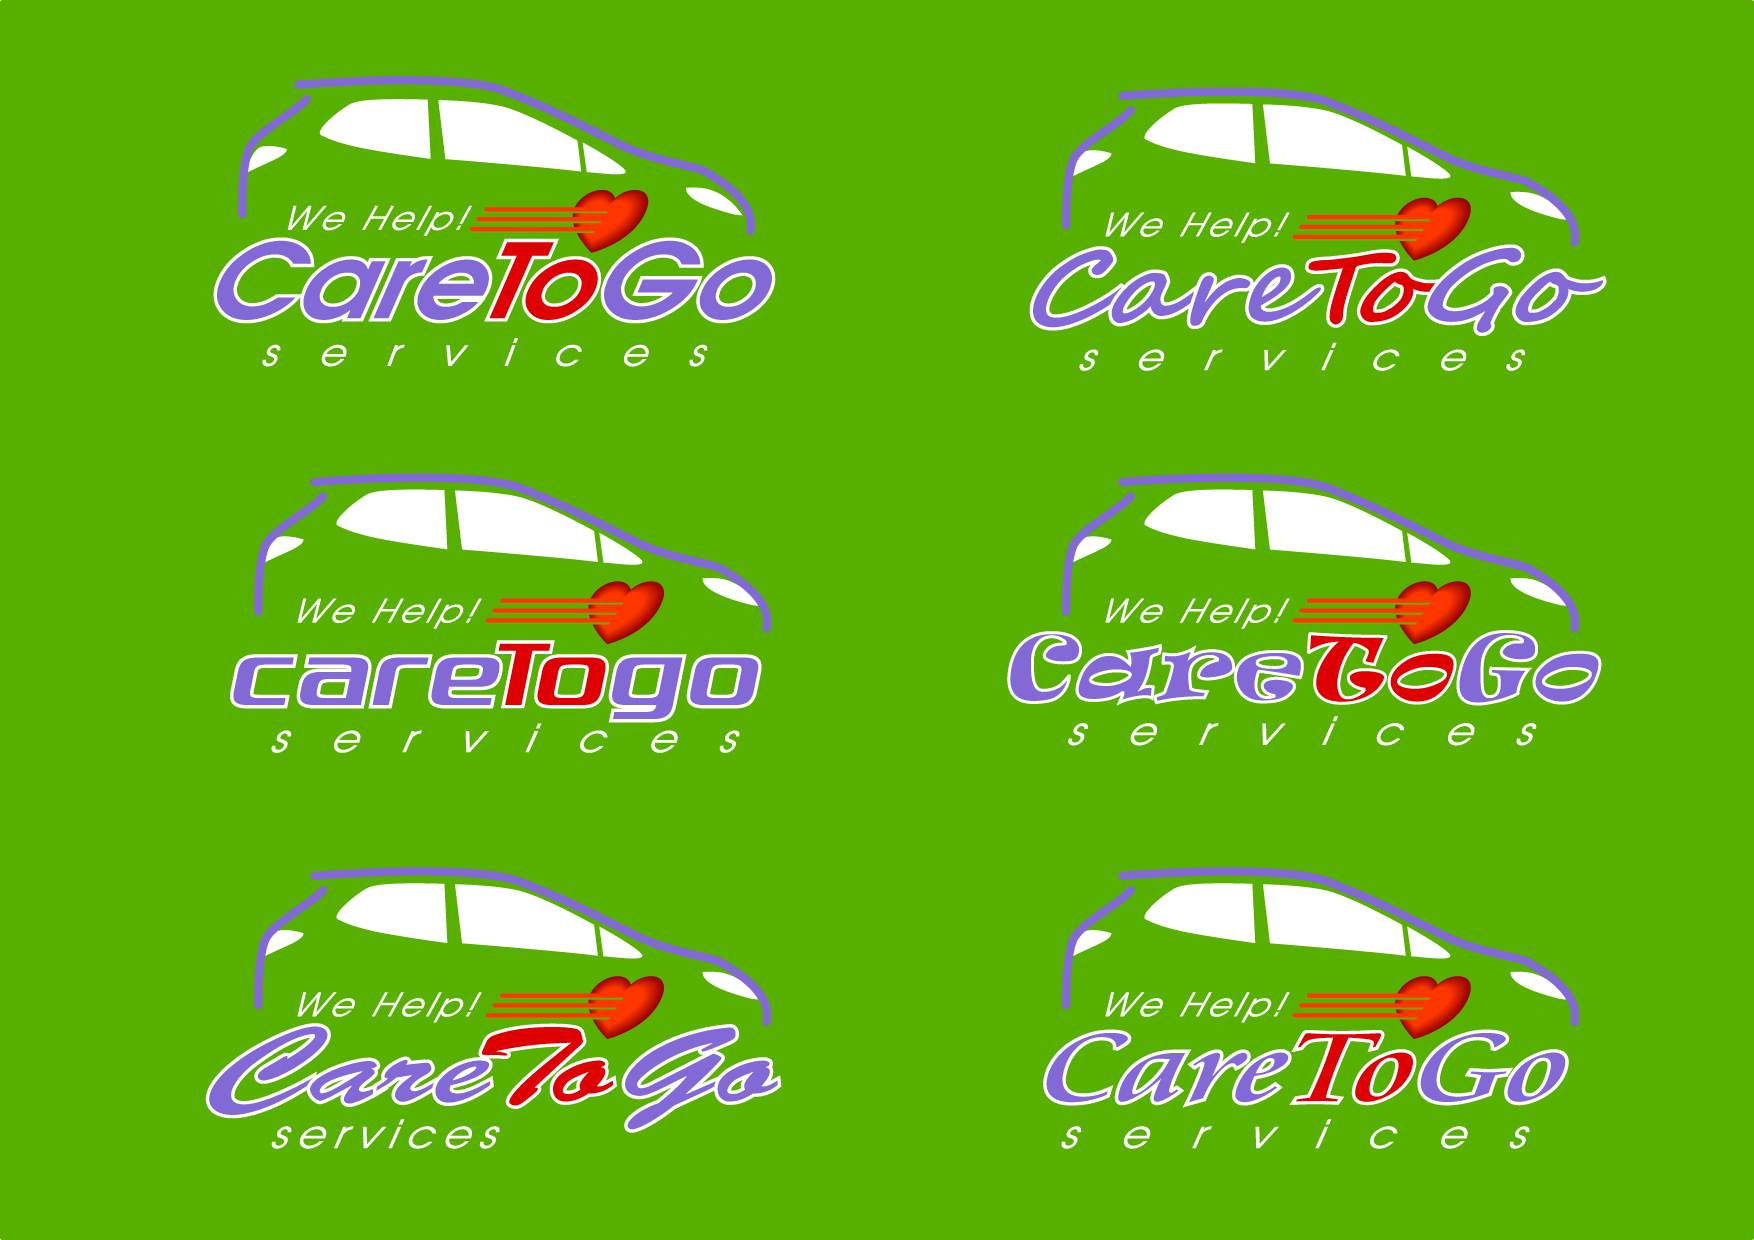 Logo Design by Wilfredo Mendoza - Entry No. 218 in the Logo Design Contest Care To Go Services.